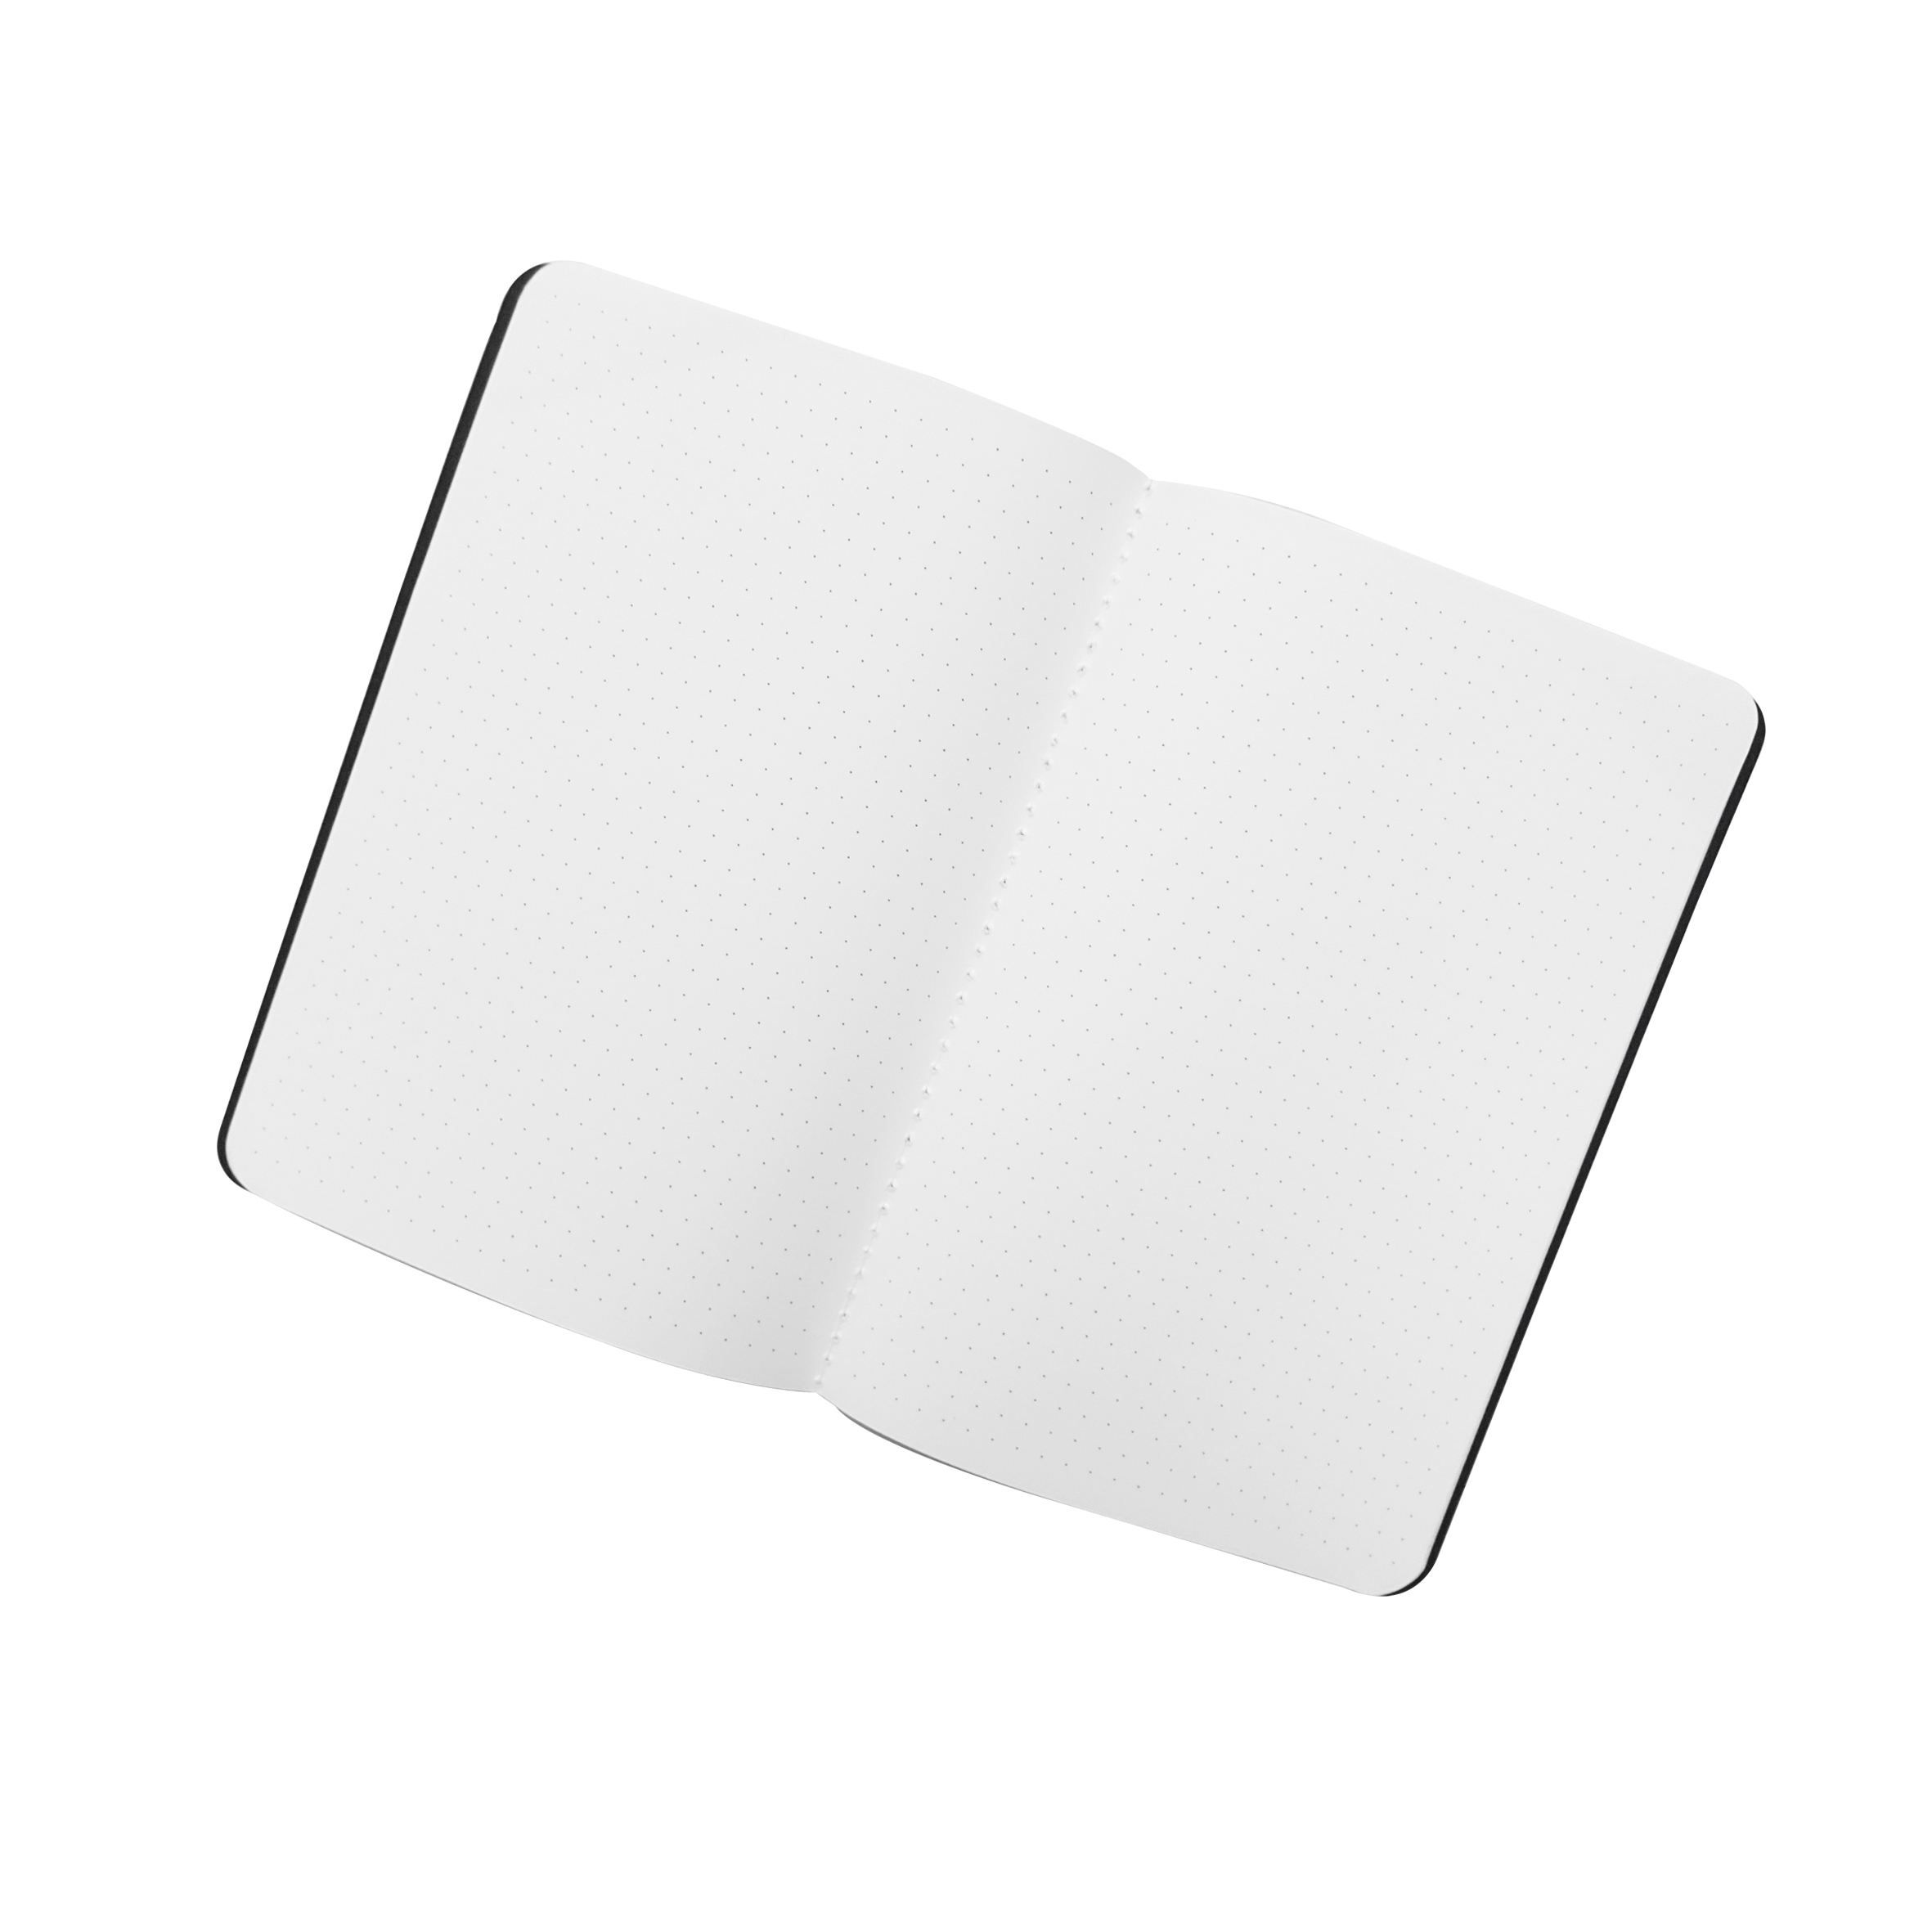 Storyboard - Large Tomoe River Notebook by Endless